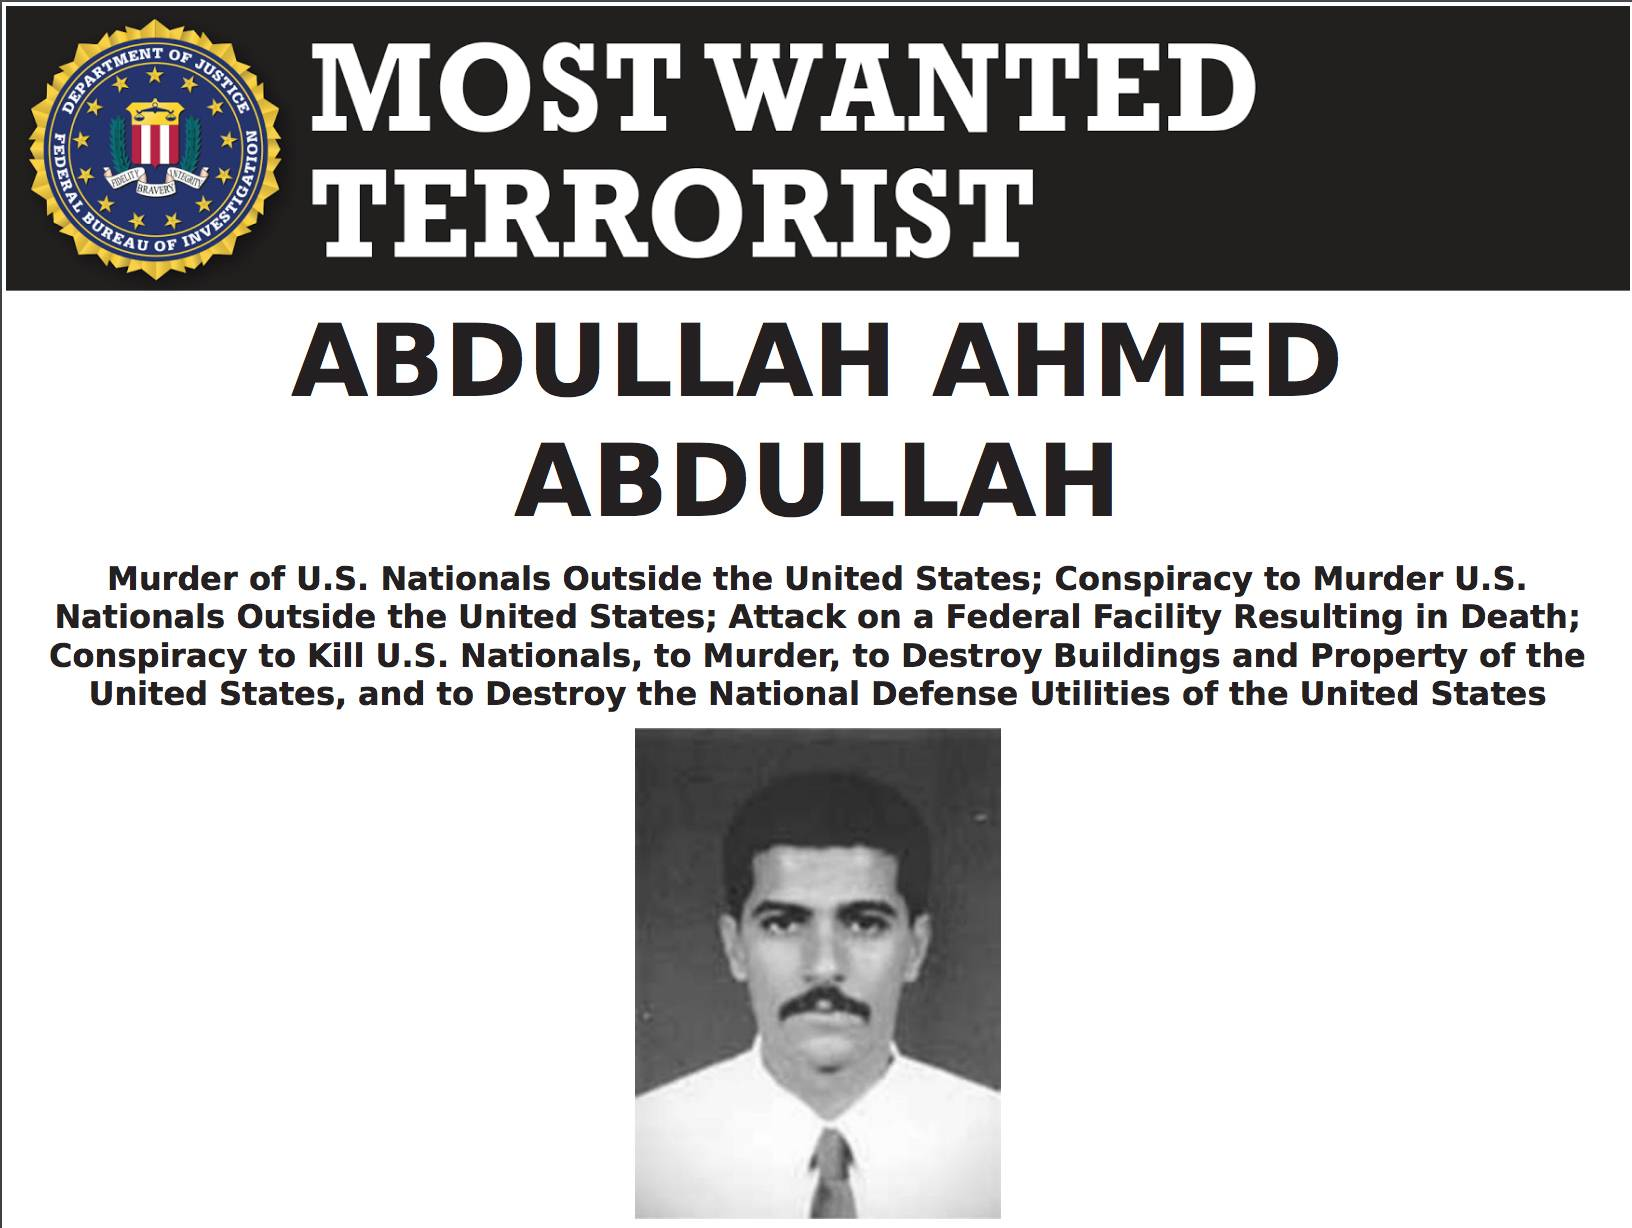 The FBI wanted poster for Abdullah Ahmed Abdullah, the second-highest official in al-Qaida, who went by the nom de guerre Abu Muhammad al-Masri. He was killed in Iran three months ago, intelligence officials from multiple countries have confirmed.  | FEDERAL BUREAU OF INVESTIGATION / VIA THE NEW YORK TIMES